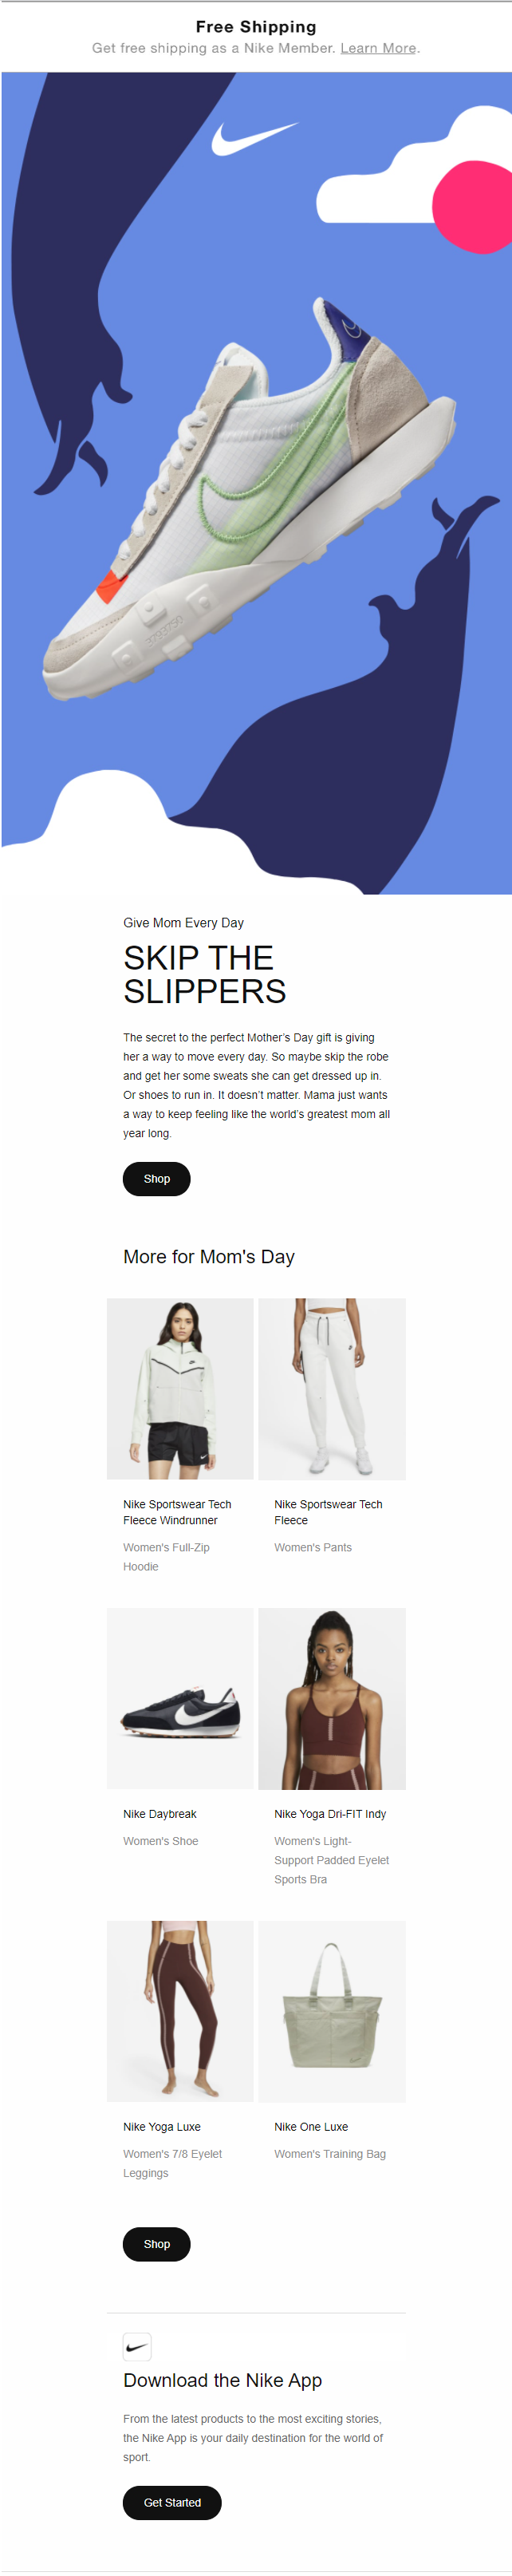 nike-make-moms-day-every-day